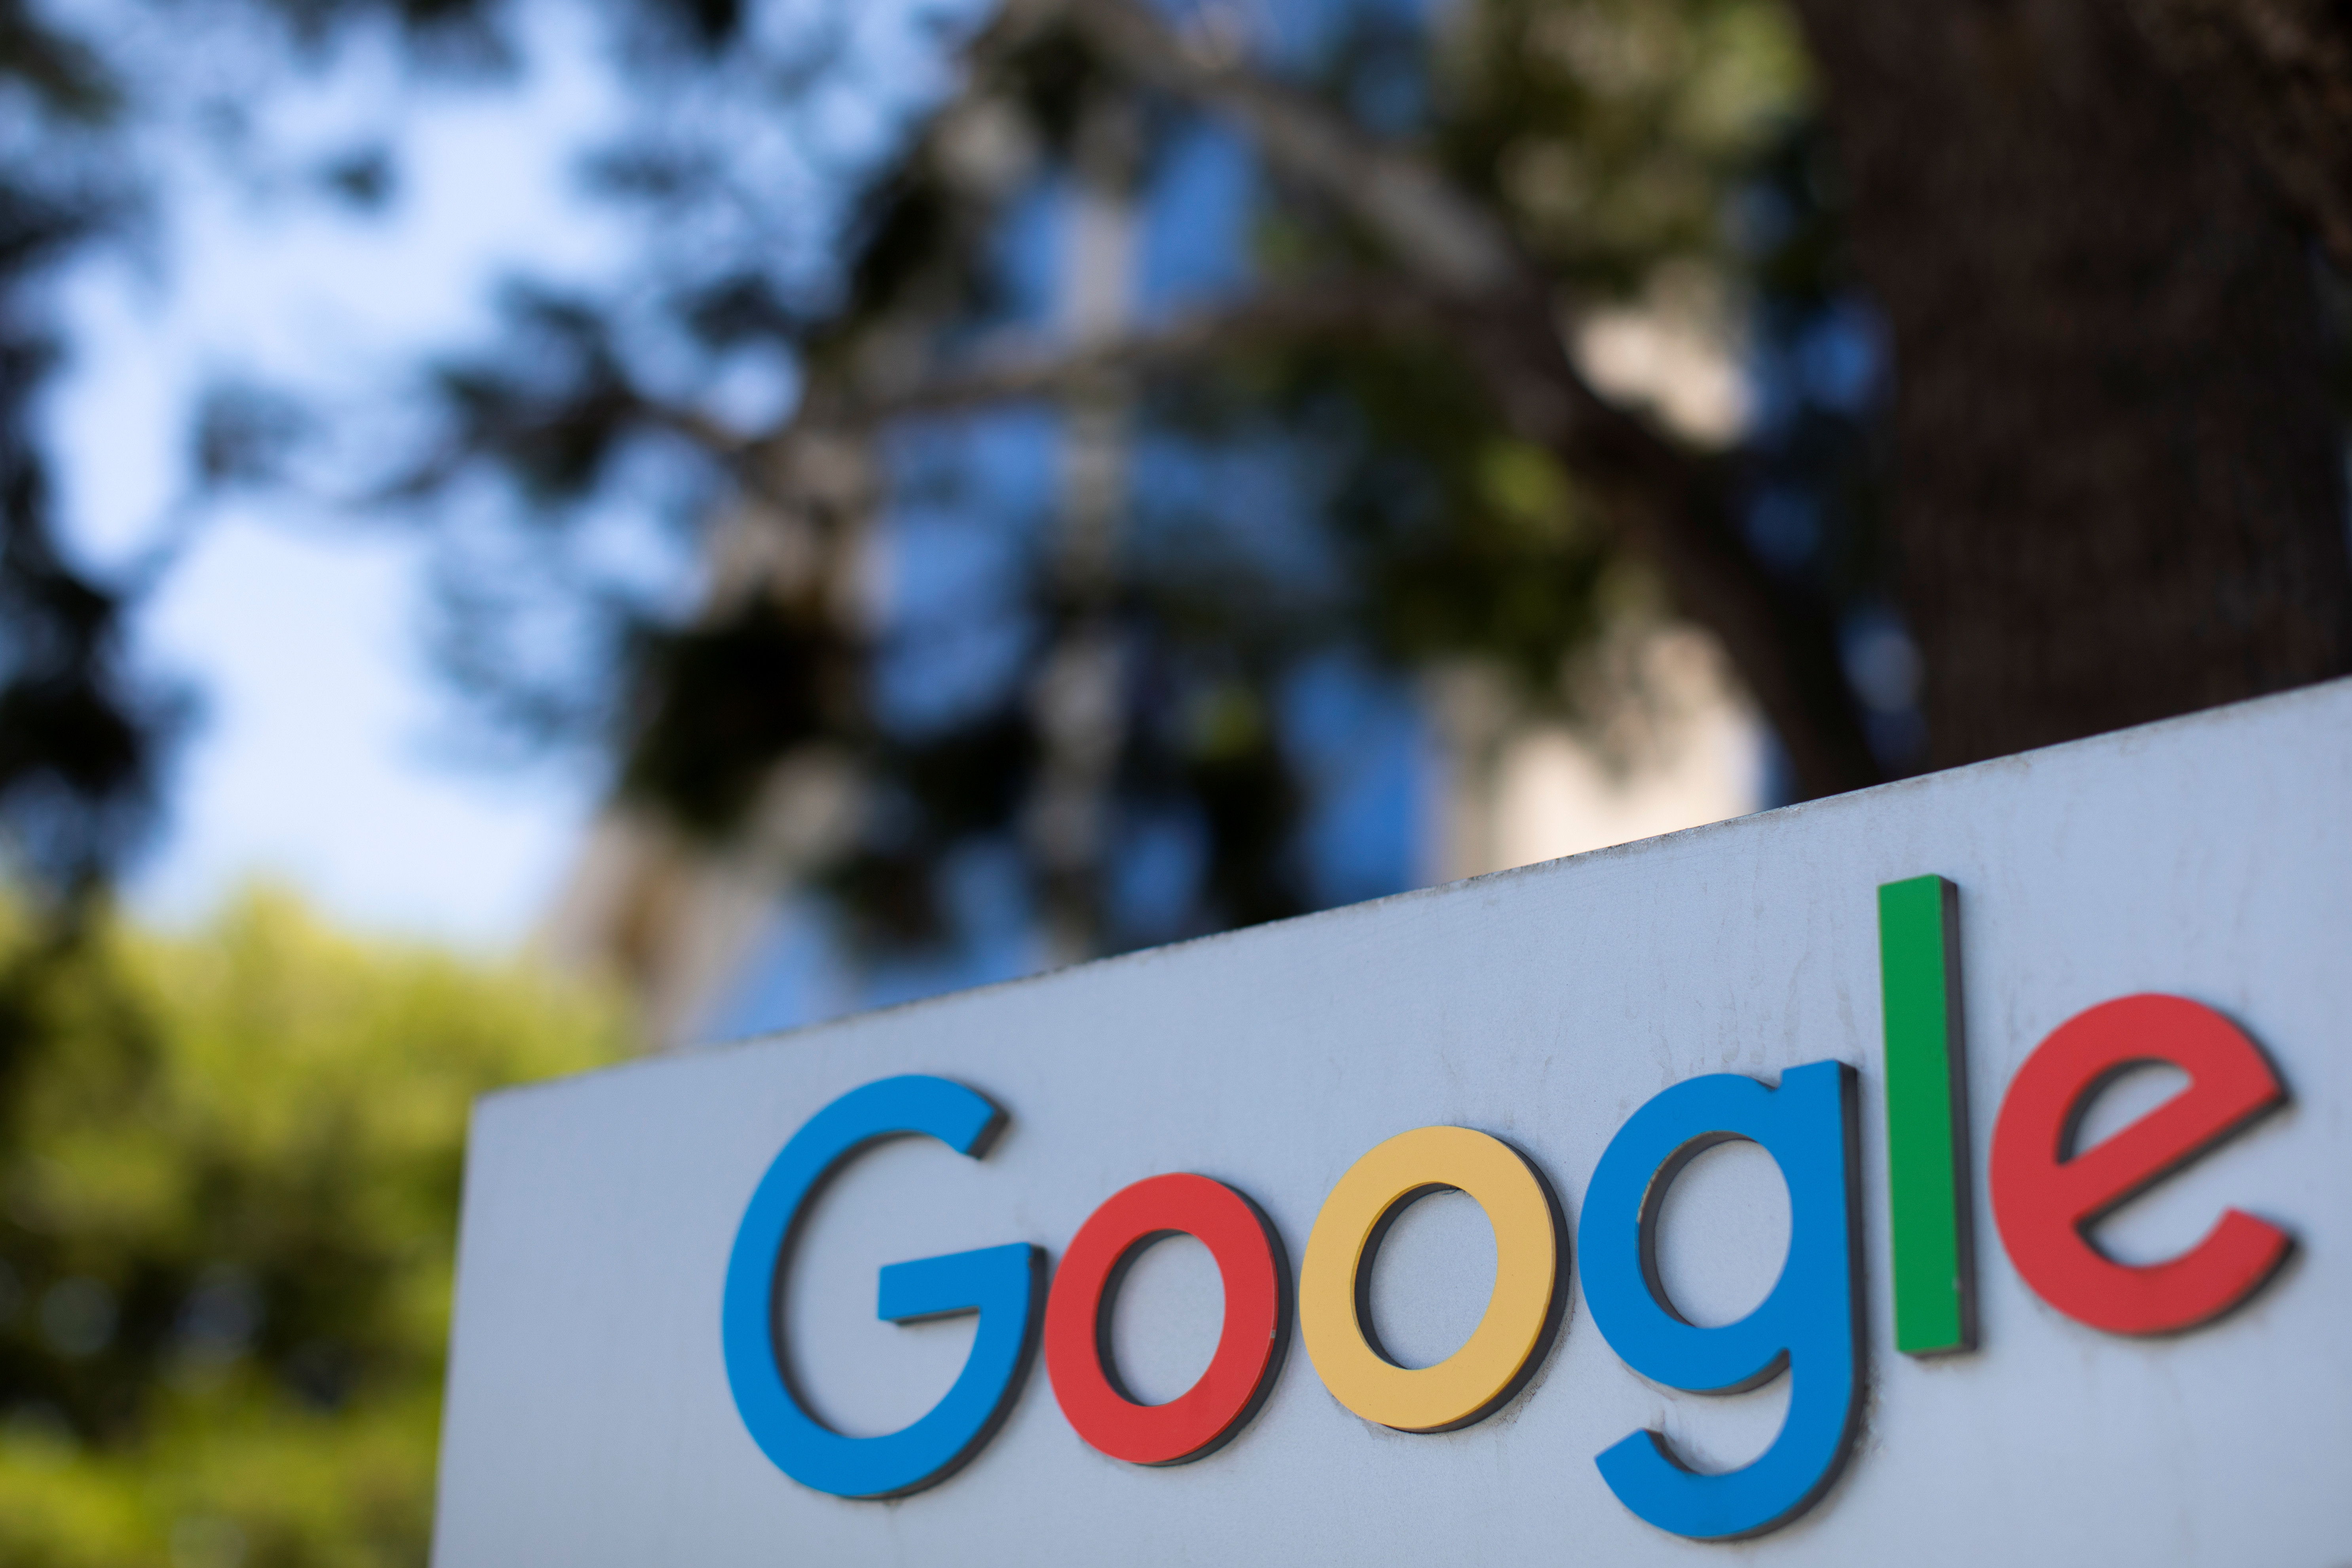 After the company announced it would extend its coronavirus work-from-home order until summer 2021, a  Google sign is shown at one of the company's office complexes in Irvine, California, U.S., July 27, 2020. REUTERS/Mike Blake - RC2W1I96ZPVR